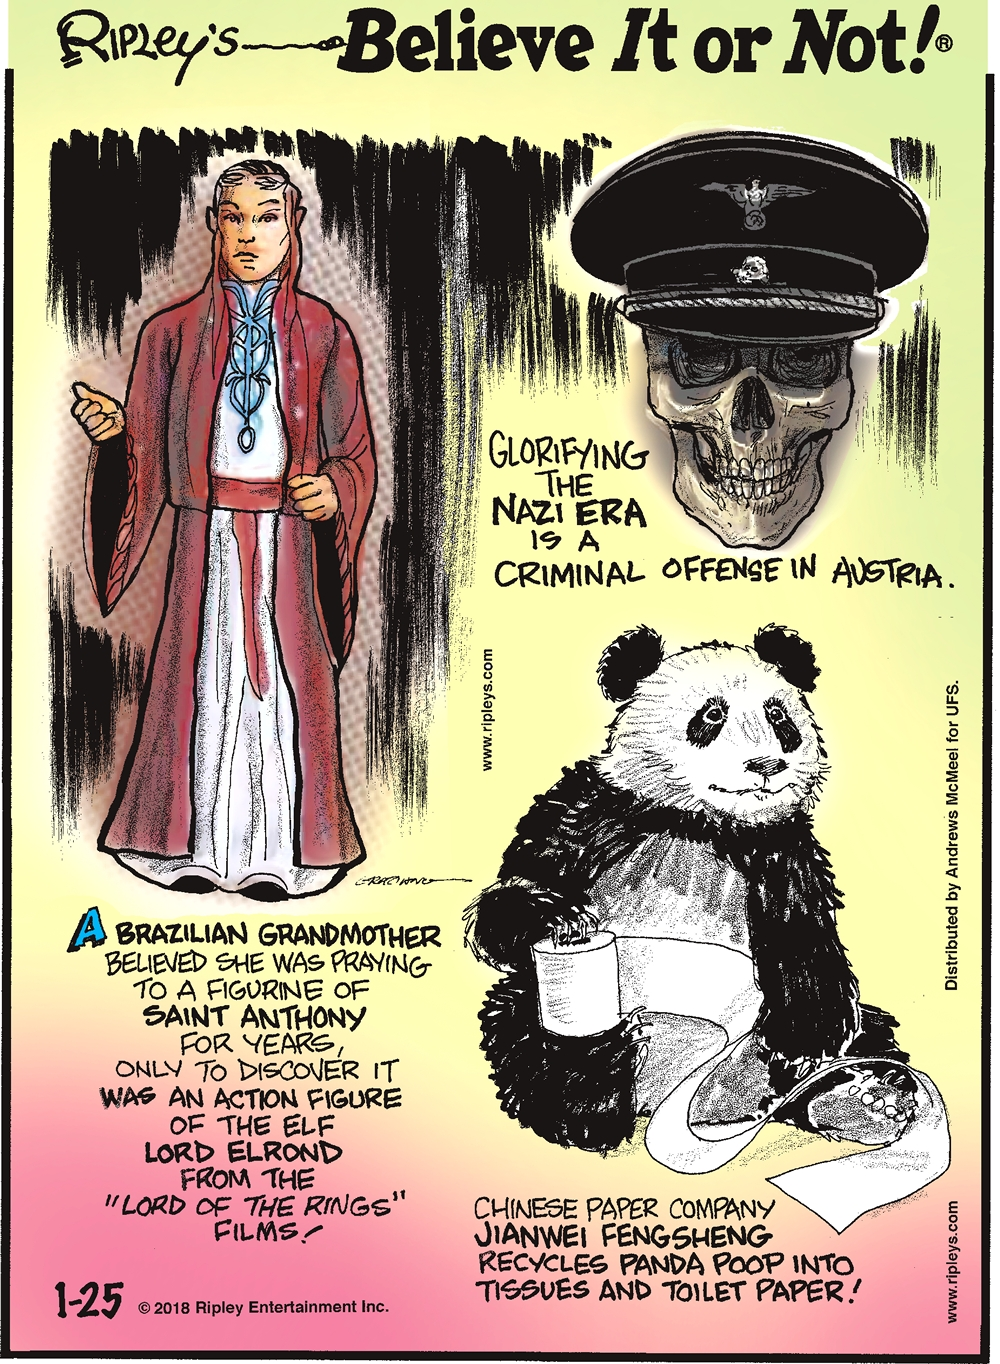 """Glorifying the Nazi era is a criminal offense in Austria.-------------------- A Brazilian grandmother believed she was praying to a figurine of Saint Anthony for years, only to discover it was an action figure of the elf Lord Elrond from the """"Lord of the Rings"""" films!-------------------- Chinese paper company Jianwei Fengsheng recycles panda poop into tissues and toilet paper!"""